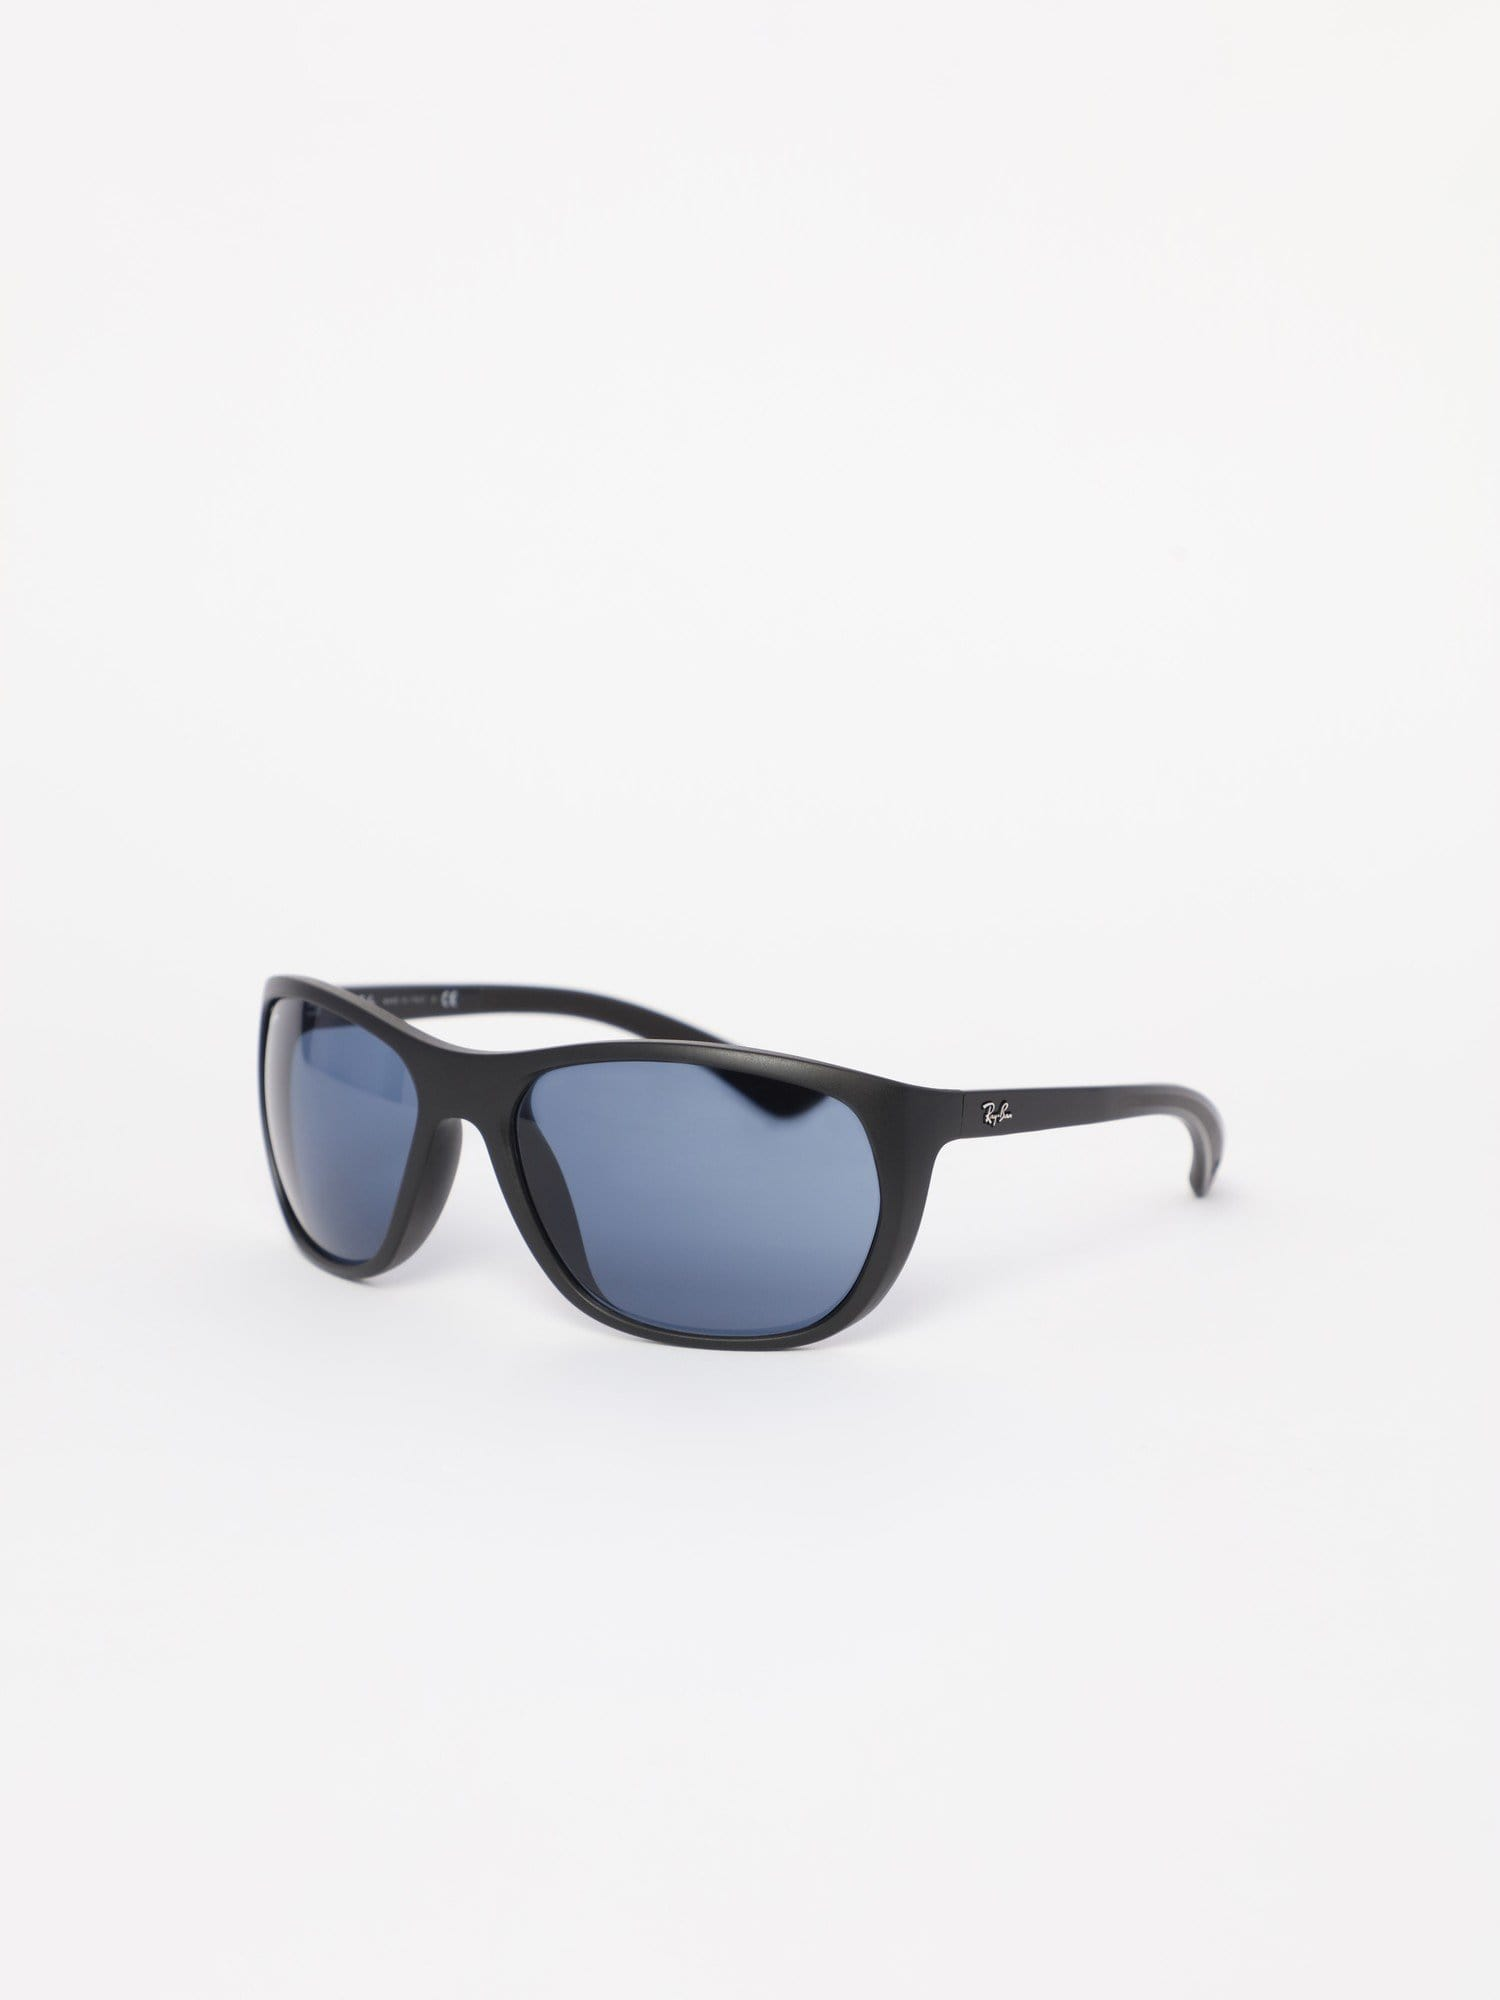 Ray-Ban Sunglasses 601S/80 / 61 Sportive Rectangular Sunglasses